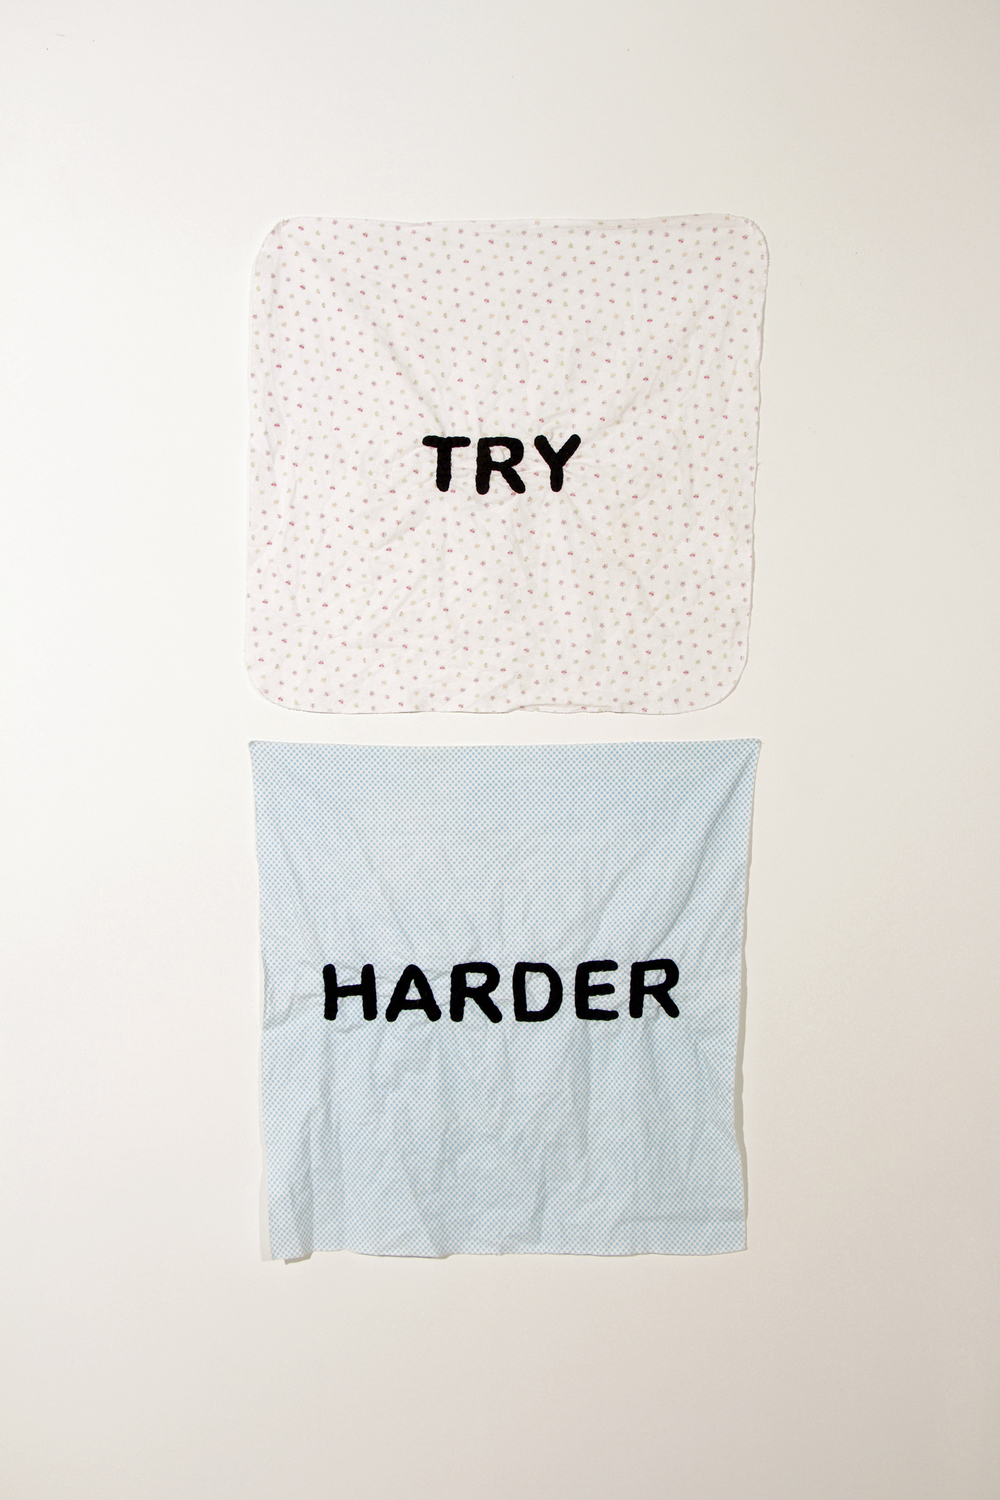 Embroidery  Try Harder -  2010 to present Try Harder